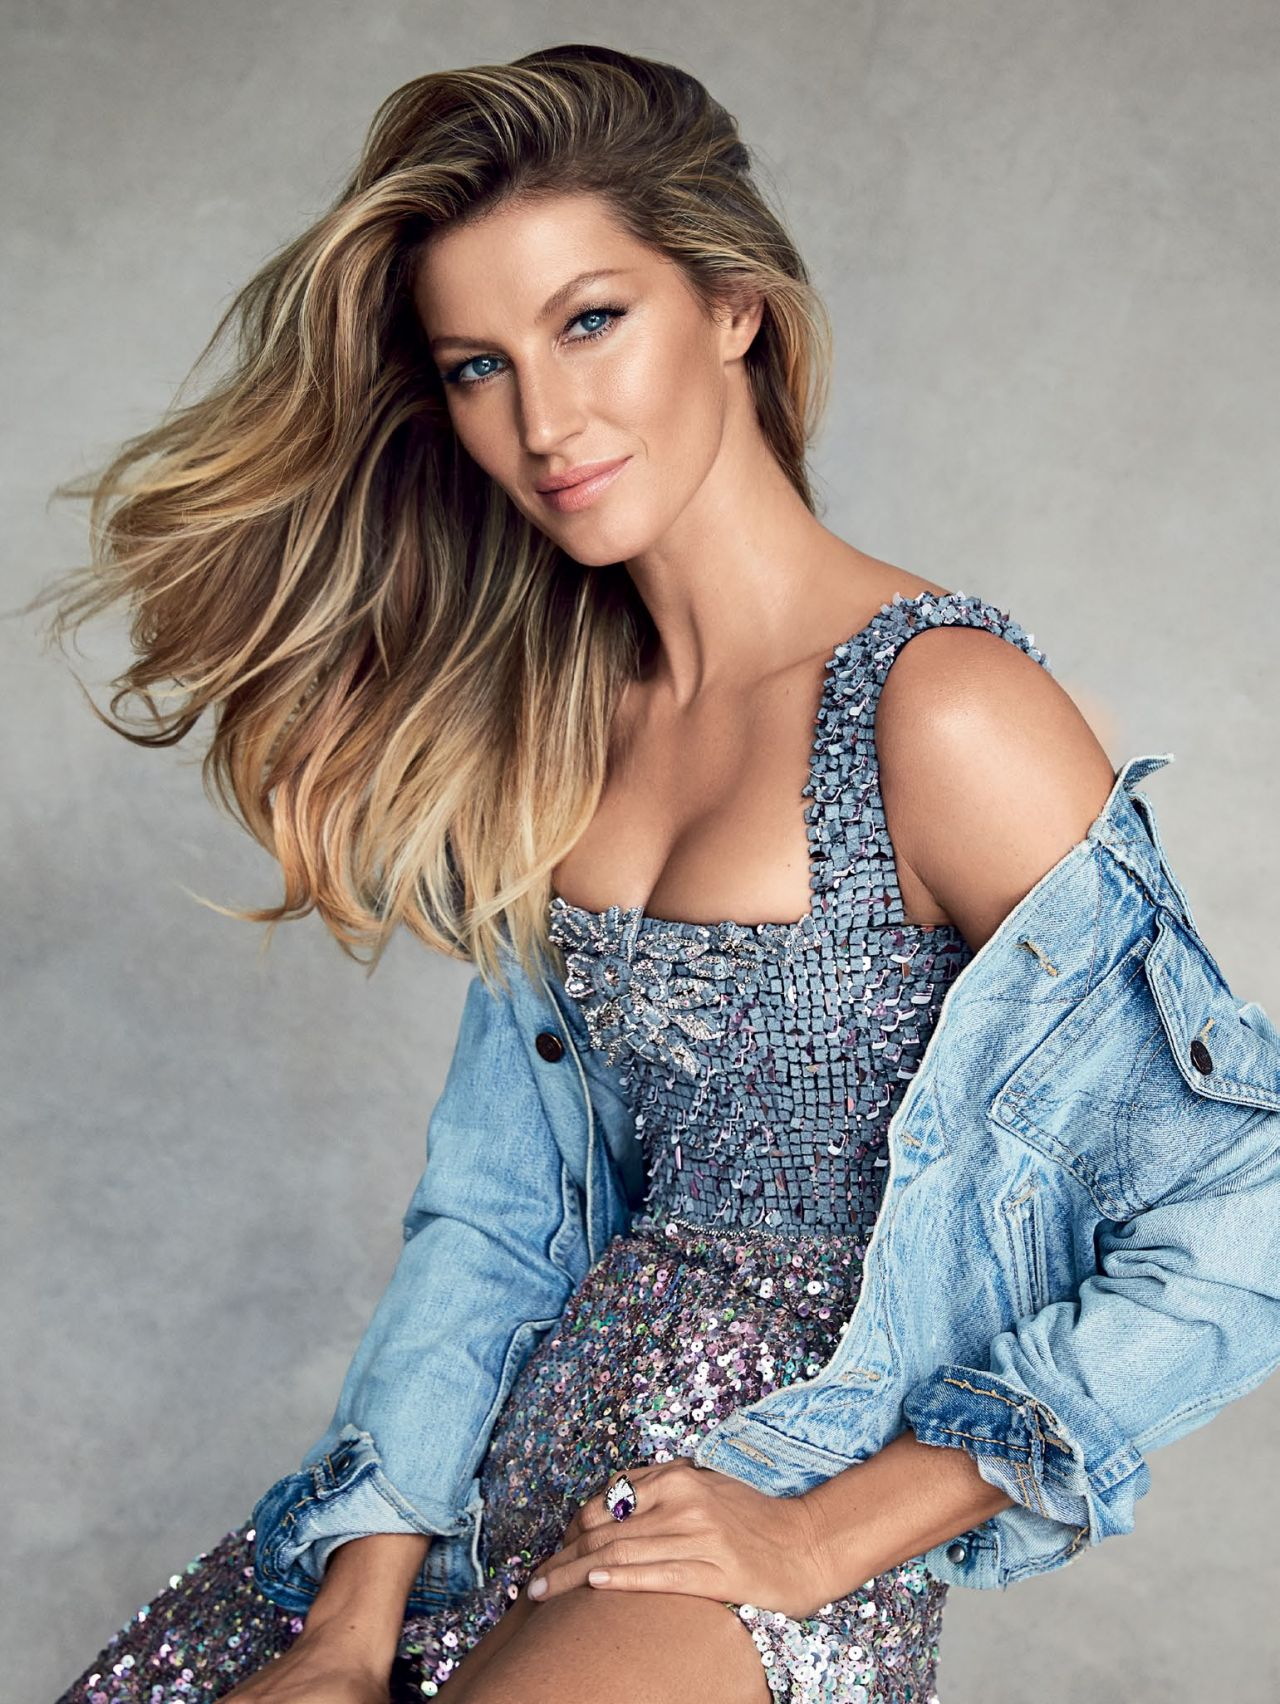 Gisele Bundchen in Vogue Paris